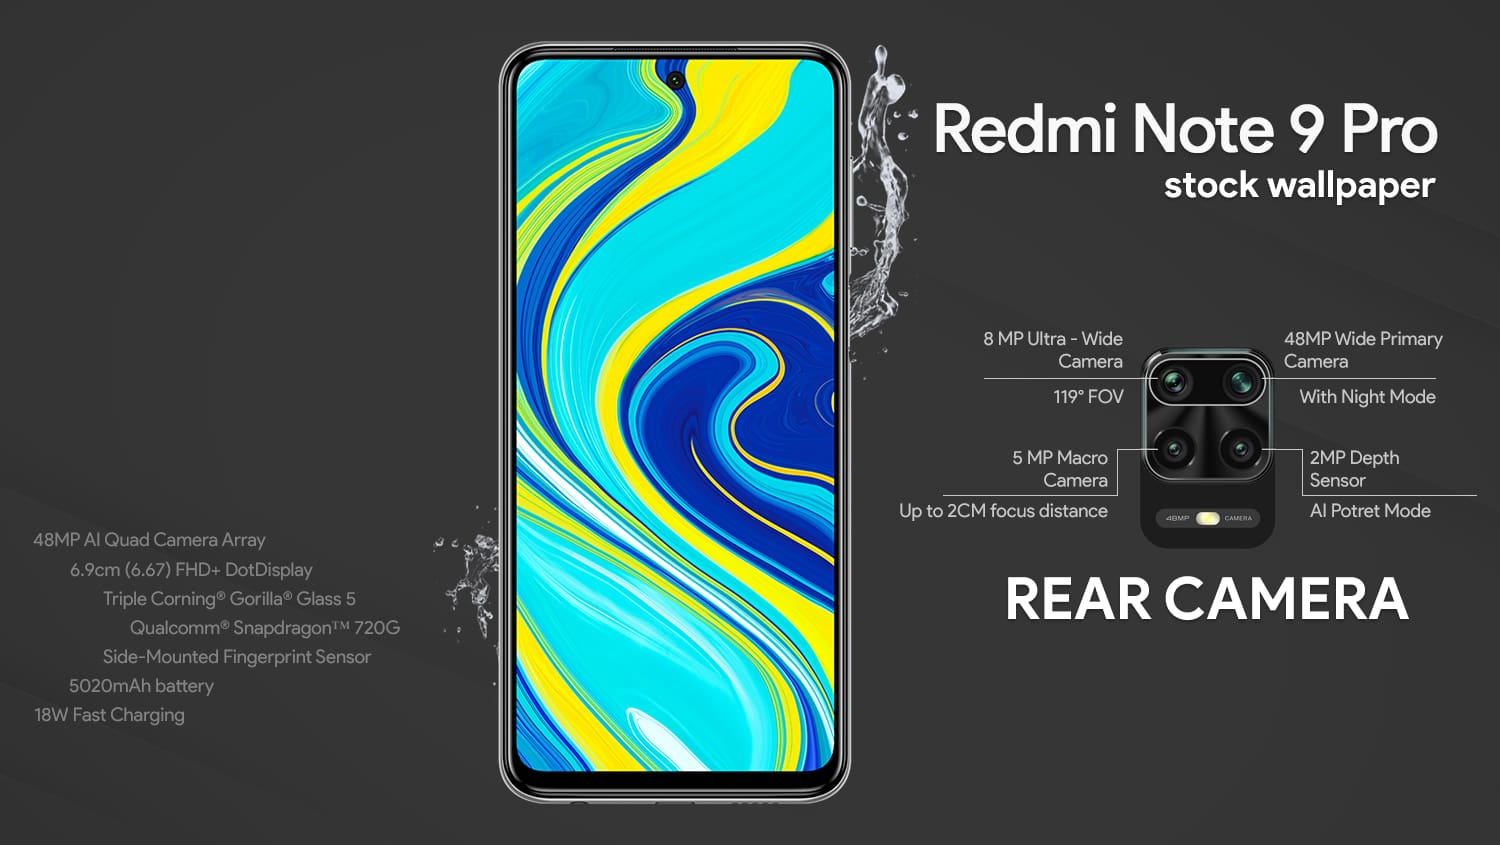 Redmi Note 9 Pro stock wallpapers download here